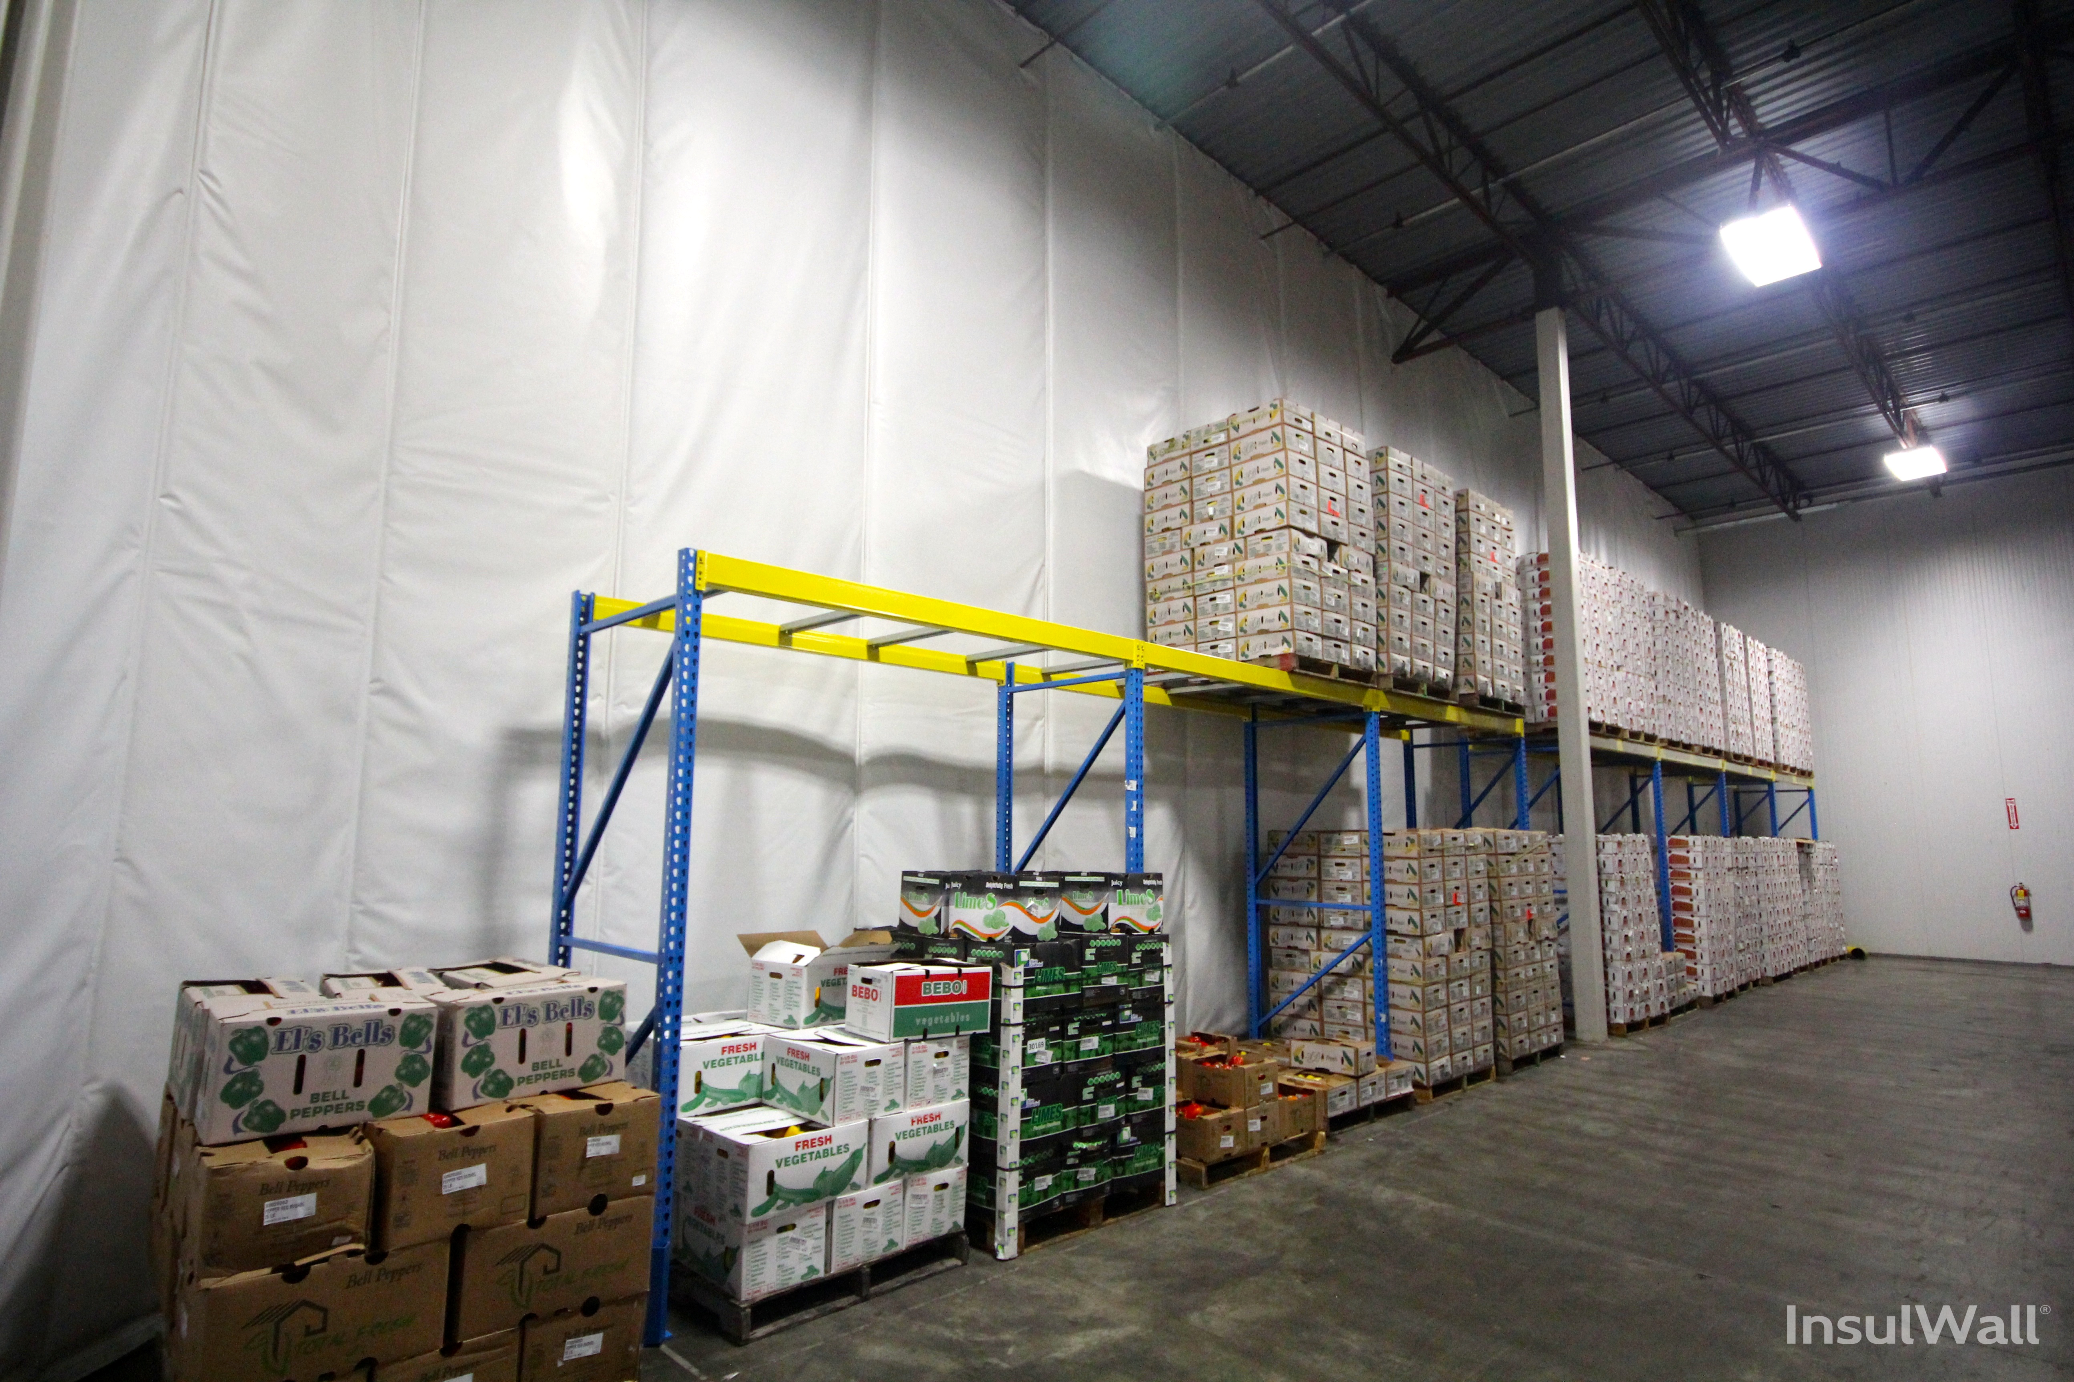 Insulated curtains industrial - Randall Insulwall Insulated Warehouse Curtain Wall Divides Cooler Space Www Randallmfg